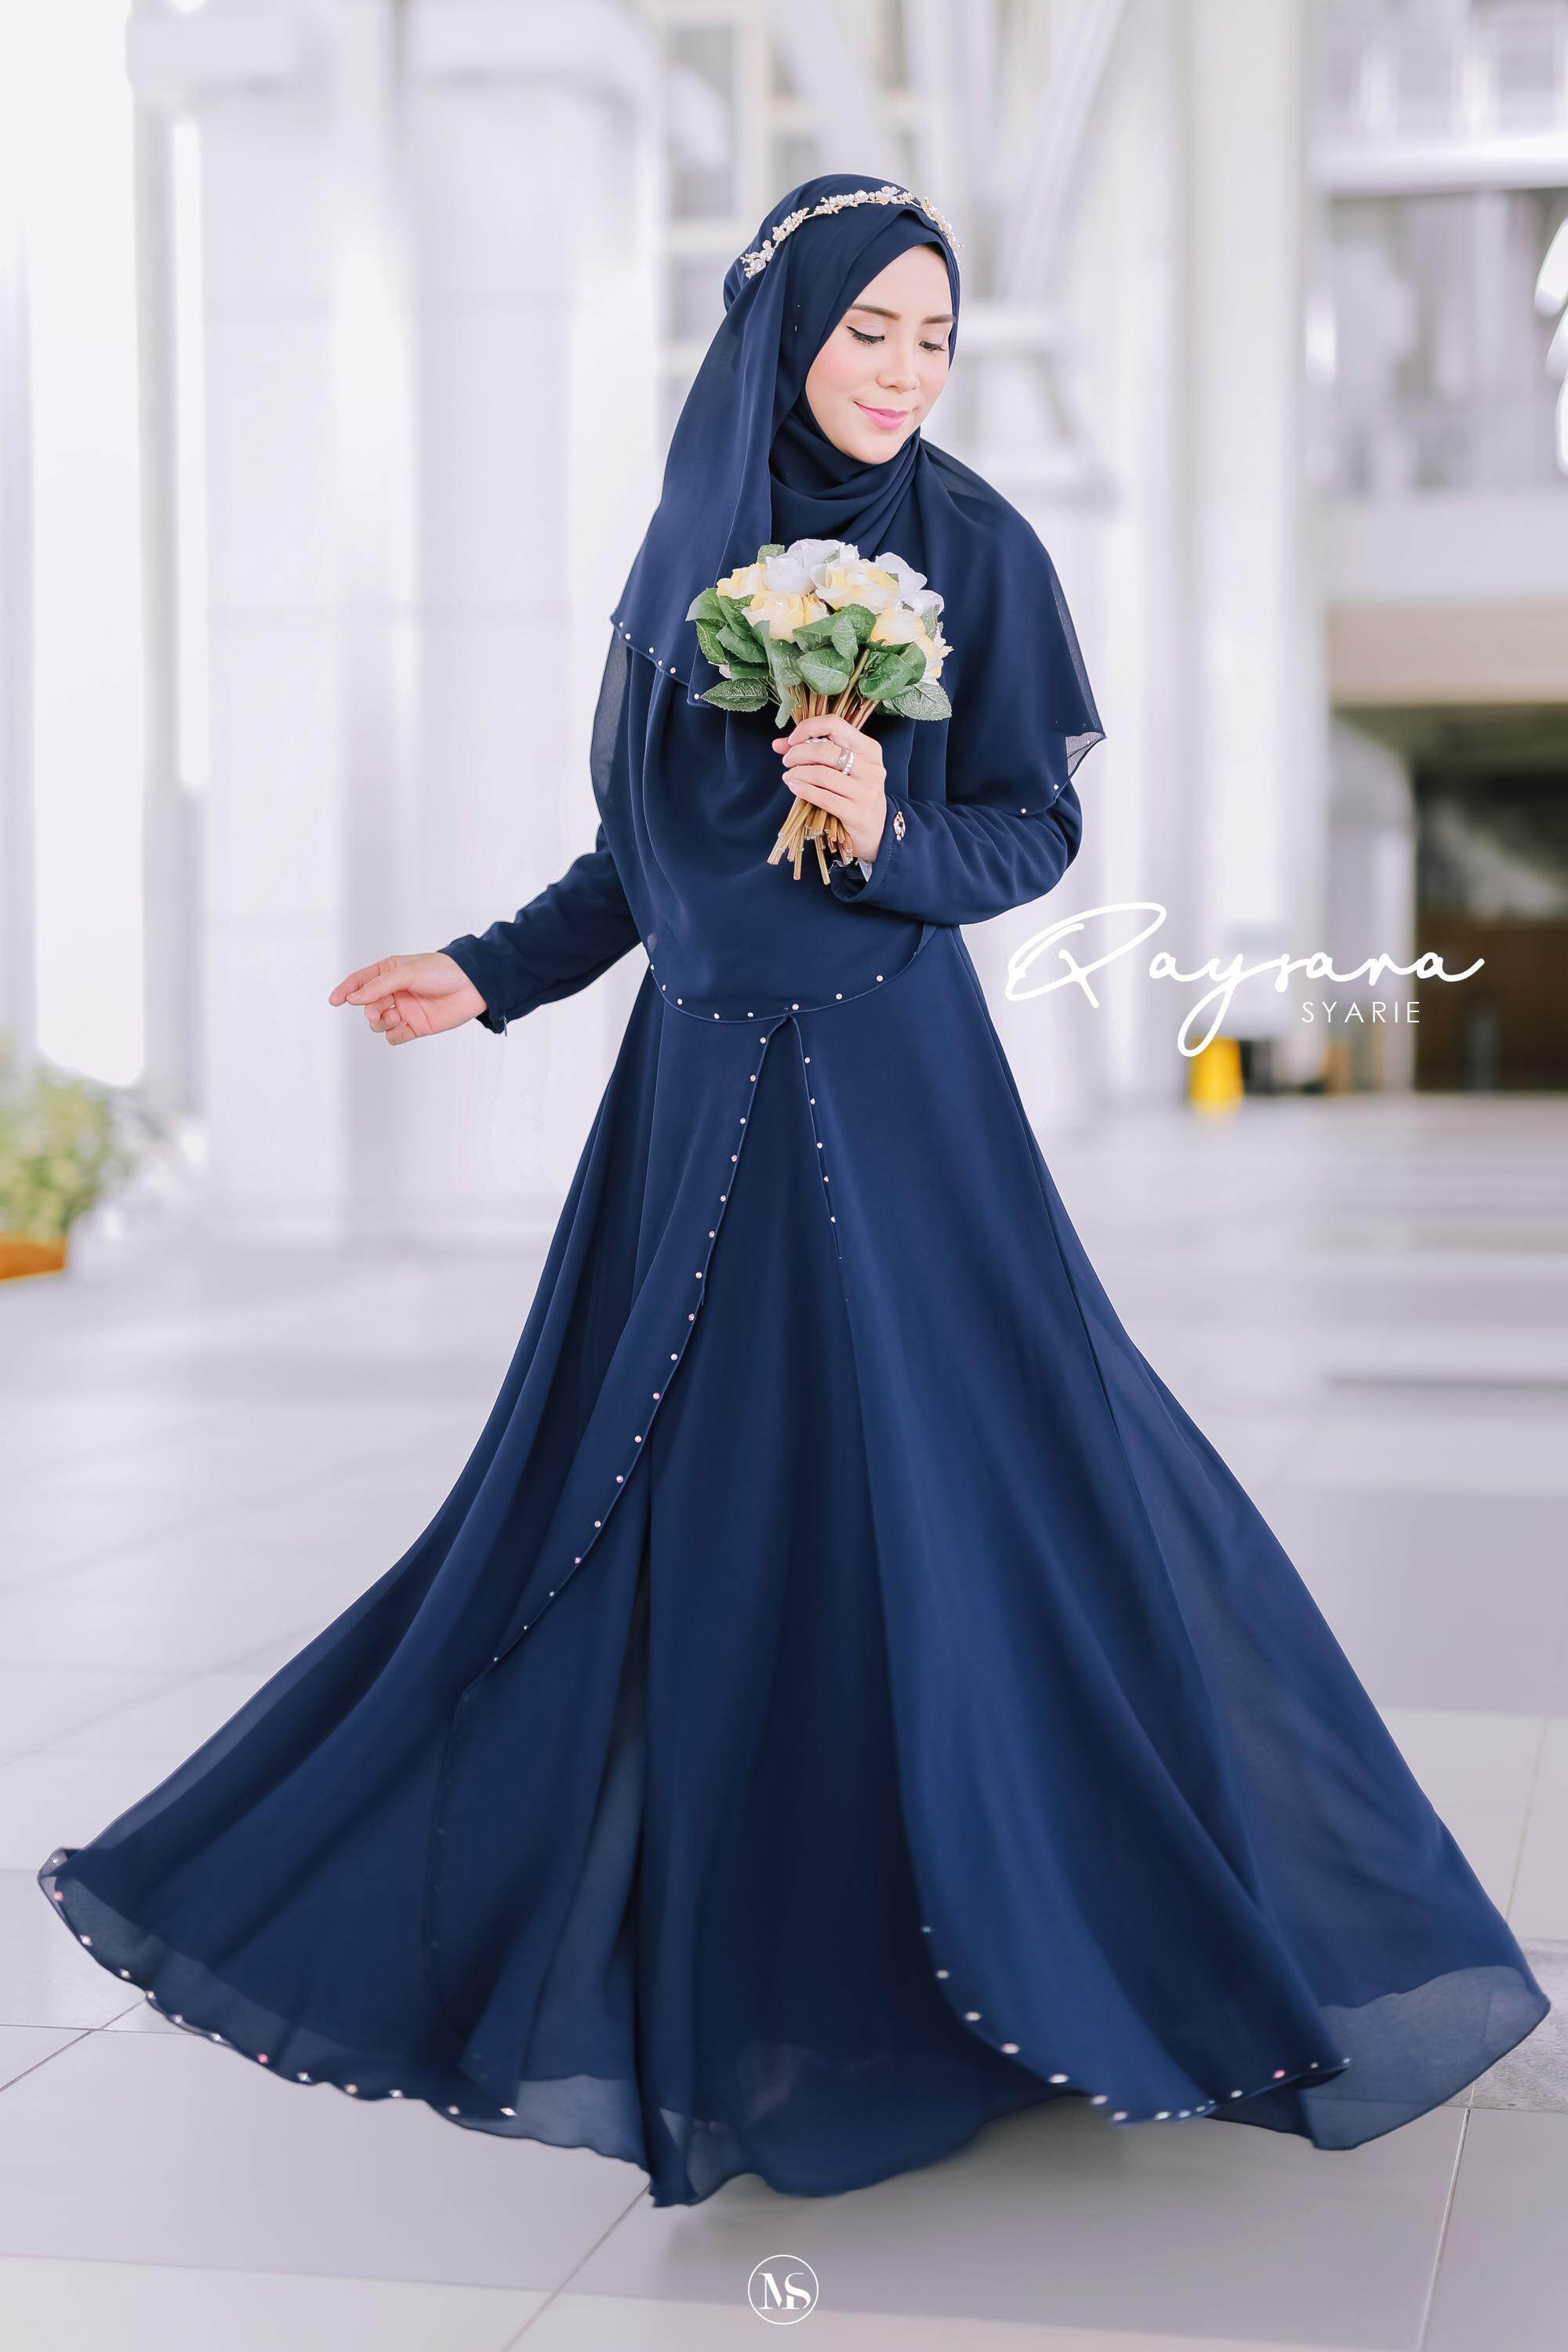 QAYSARA JUBAH TUNANG KAHWIN BAJU RAYA BRIDESMAID BAJU LABUH free tudung 8,  8 set pakaian Pengantin, BATU SWROVSKI , bridesmaid, maid in honour- others